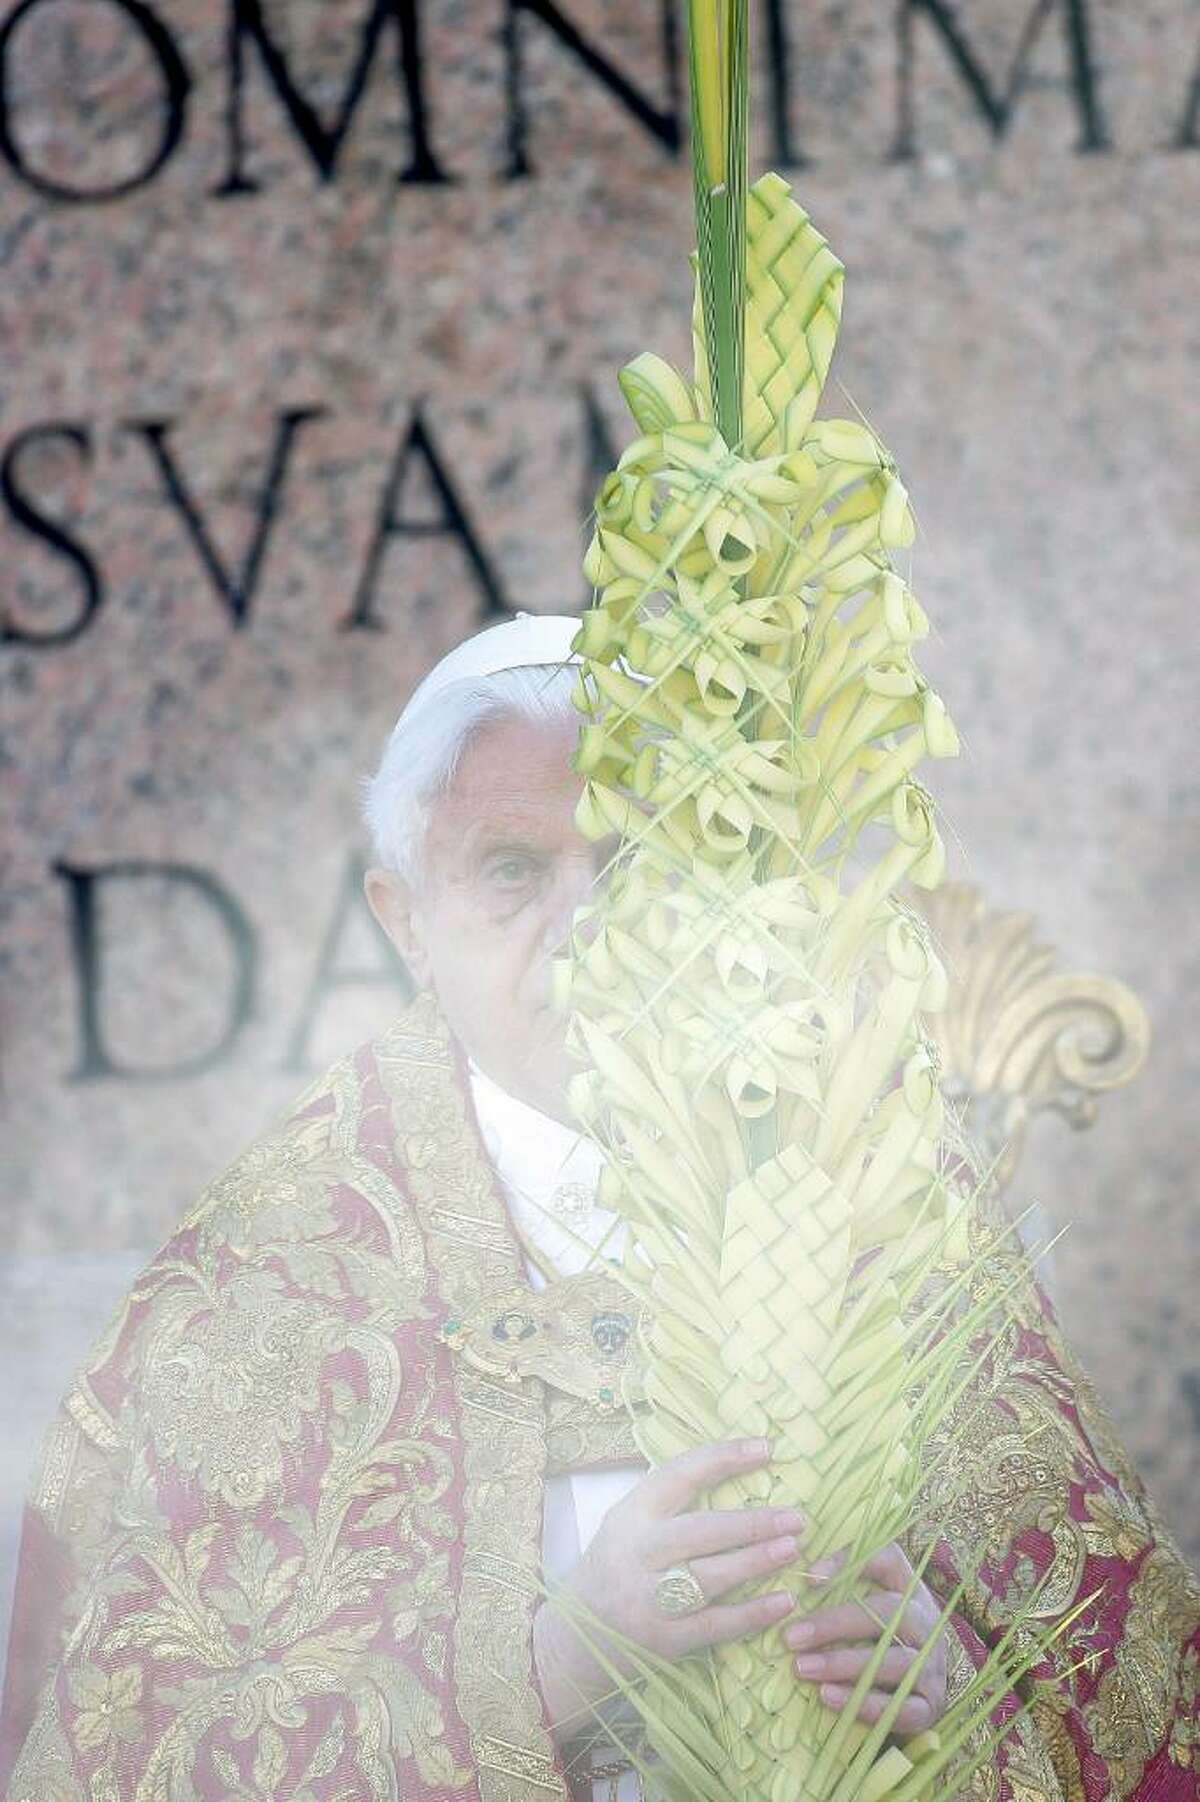 VATICAN CITY, VATICAN - MARCH 28: Pope Benedict XVI attends Palm Sunday Mass on March 28, 2010 in Vatican City, Vatican. The Pope is now facing pressure over abuse allegations which involved the German, the American and the Irish Catholic Church. (Photo by Franco Origlia/Getty Images) *** Local Caption *** Benedict XVI